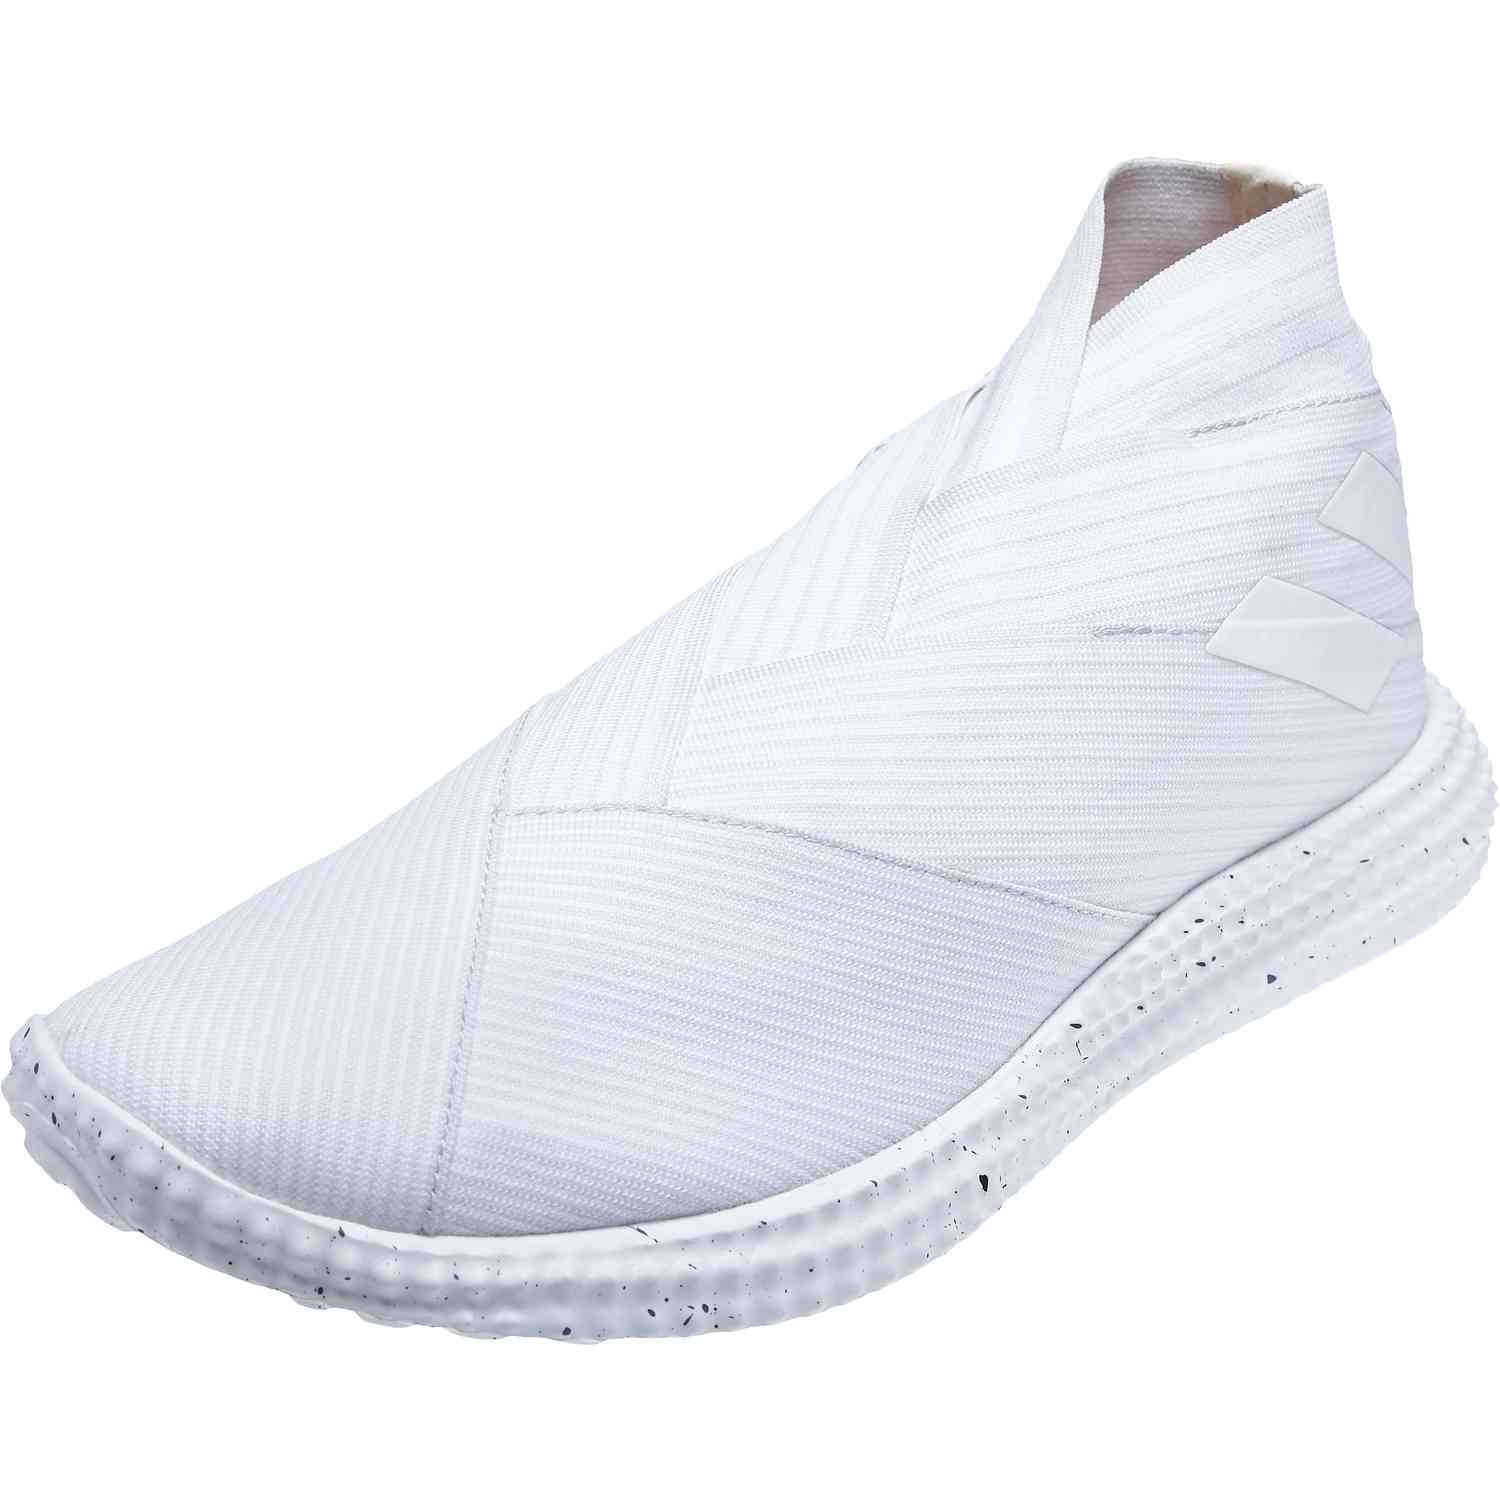 adidas Nemeziz 19.1 TR </p>                     </div> </div>          <!-- tab-area-end --> </div> <!--bof also purchased products module-->  <!--eof also purchased products module--> <!--bof also related products module--> <!--eof also related products module--> <!--bof Prev/Next bottom position -->         <!--eof Prev/Next bottom position --> <!--bof Form close--> </form> <!--bof Form close--> </div> <div style=